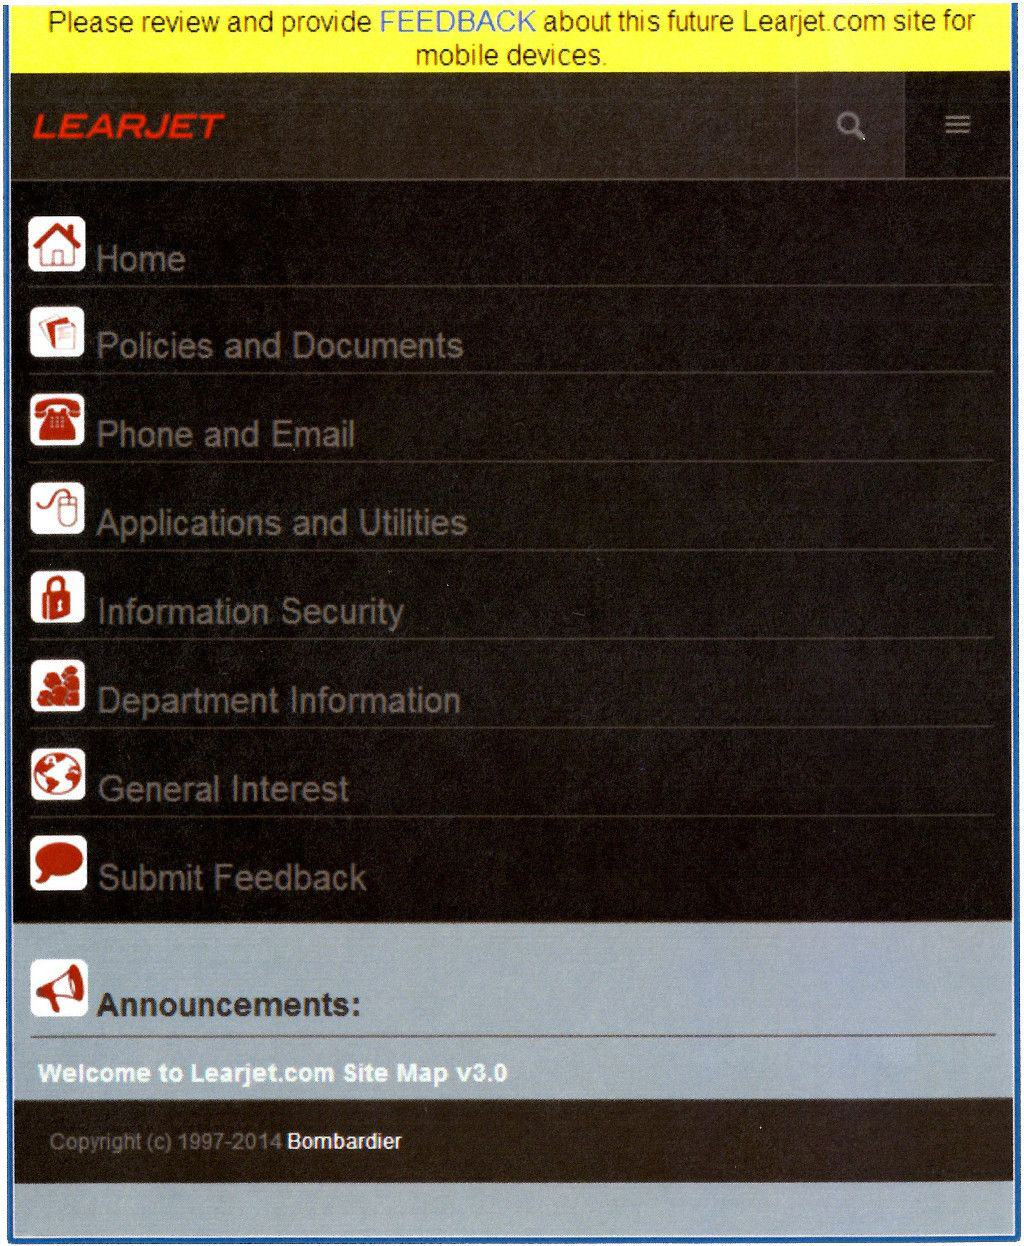 Learjet Intranet Portal Mobile App Menu Website